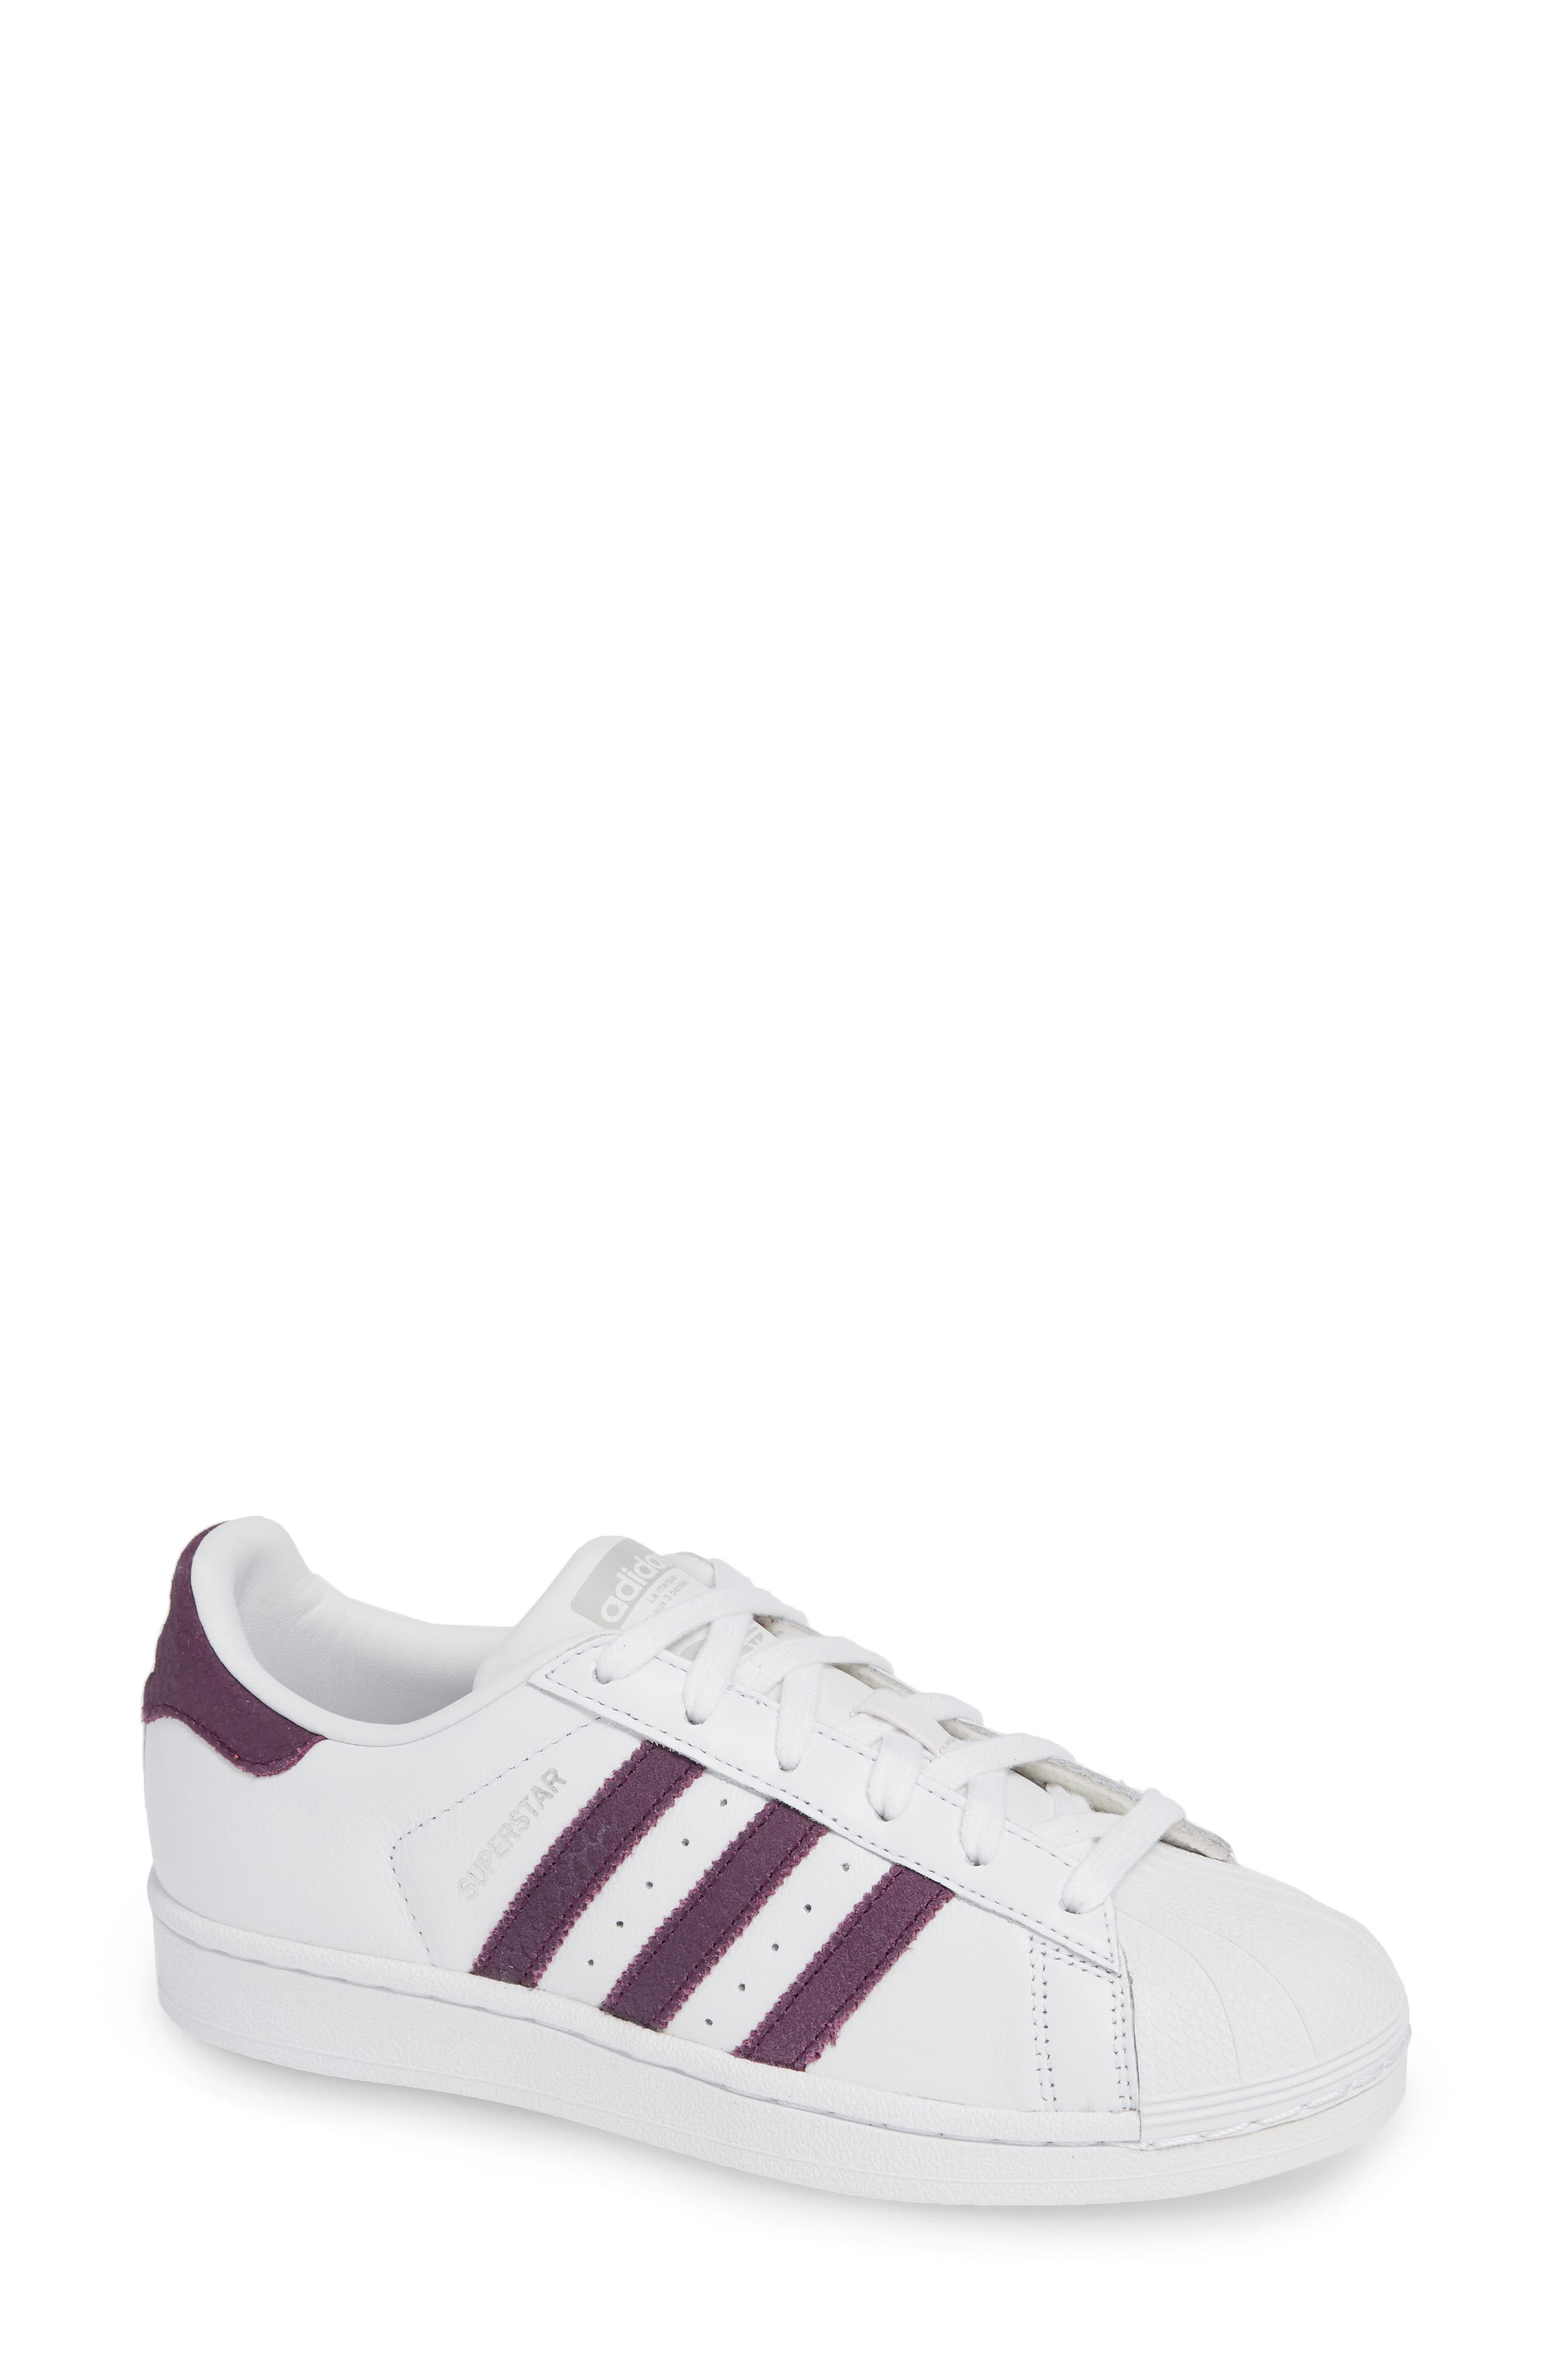 Superstar Sneaker,                             Main thumbnail 1, color,                             WHITE/ RED NIGHT/ SILVER